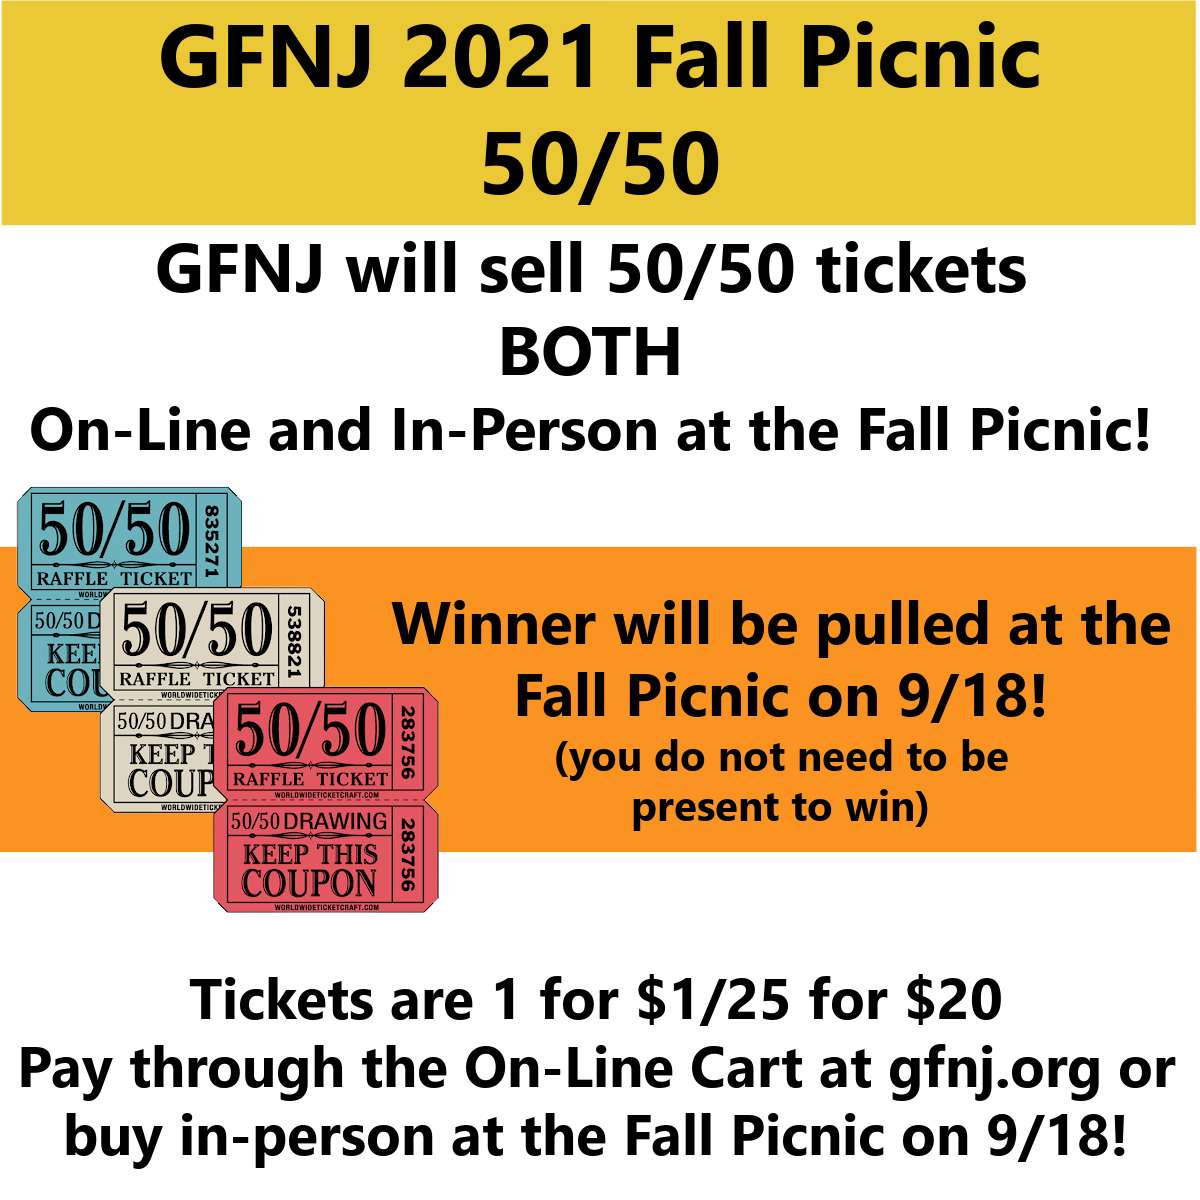 2021 Fall Picnic On-Line 50/50a